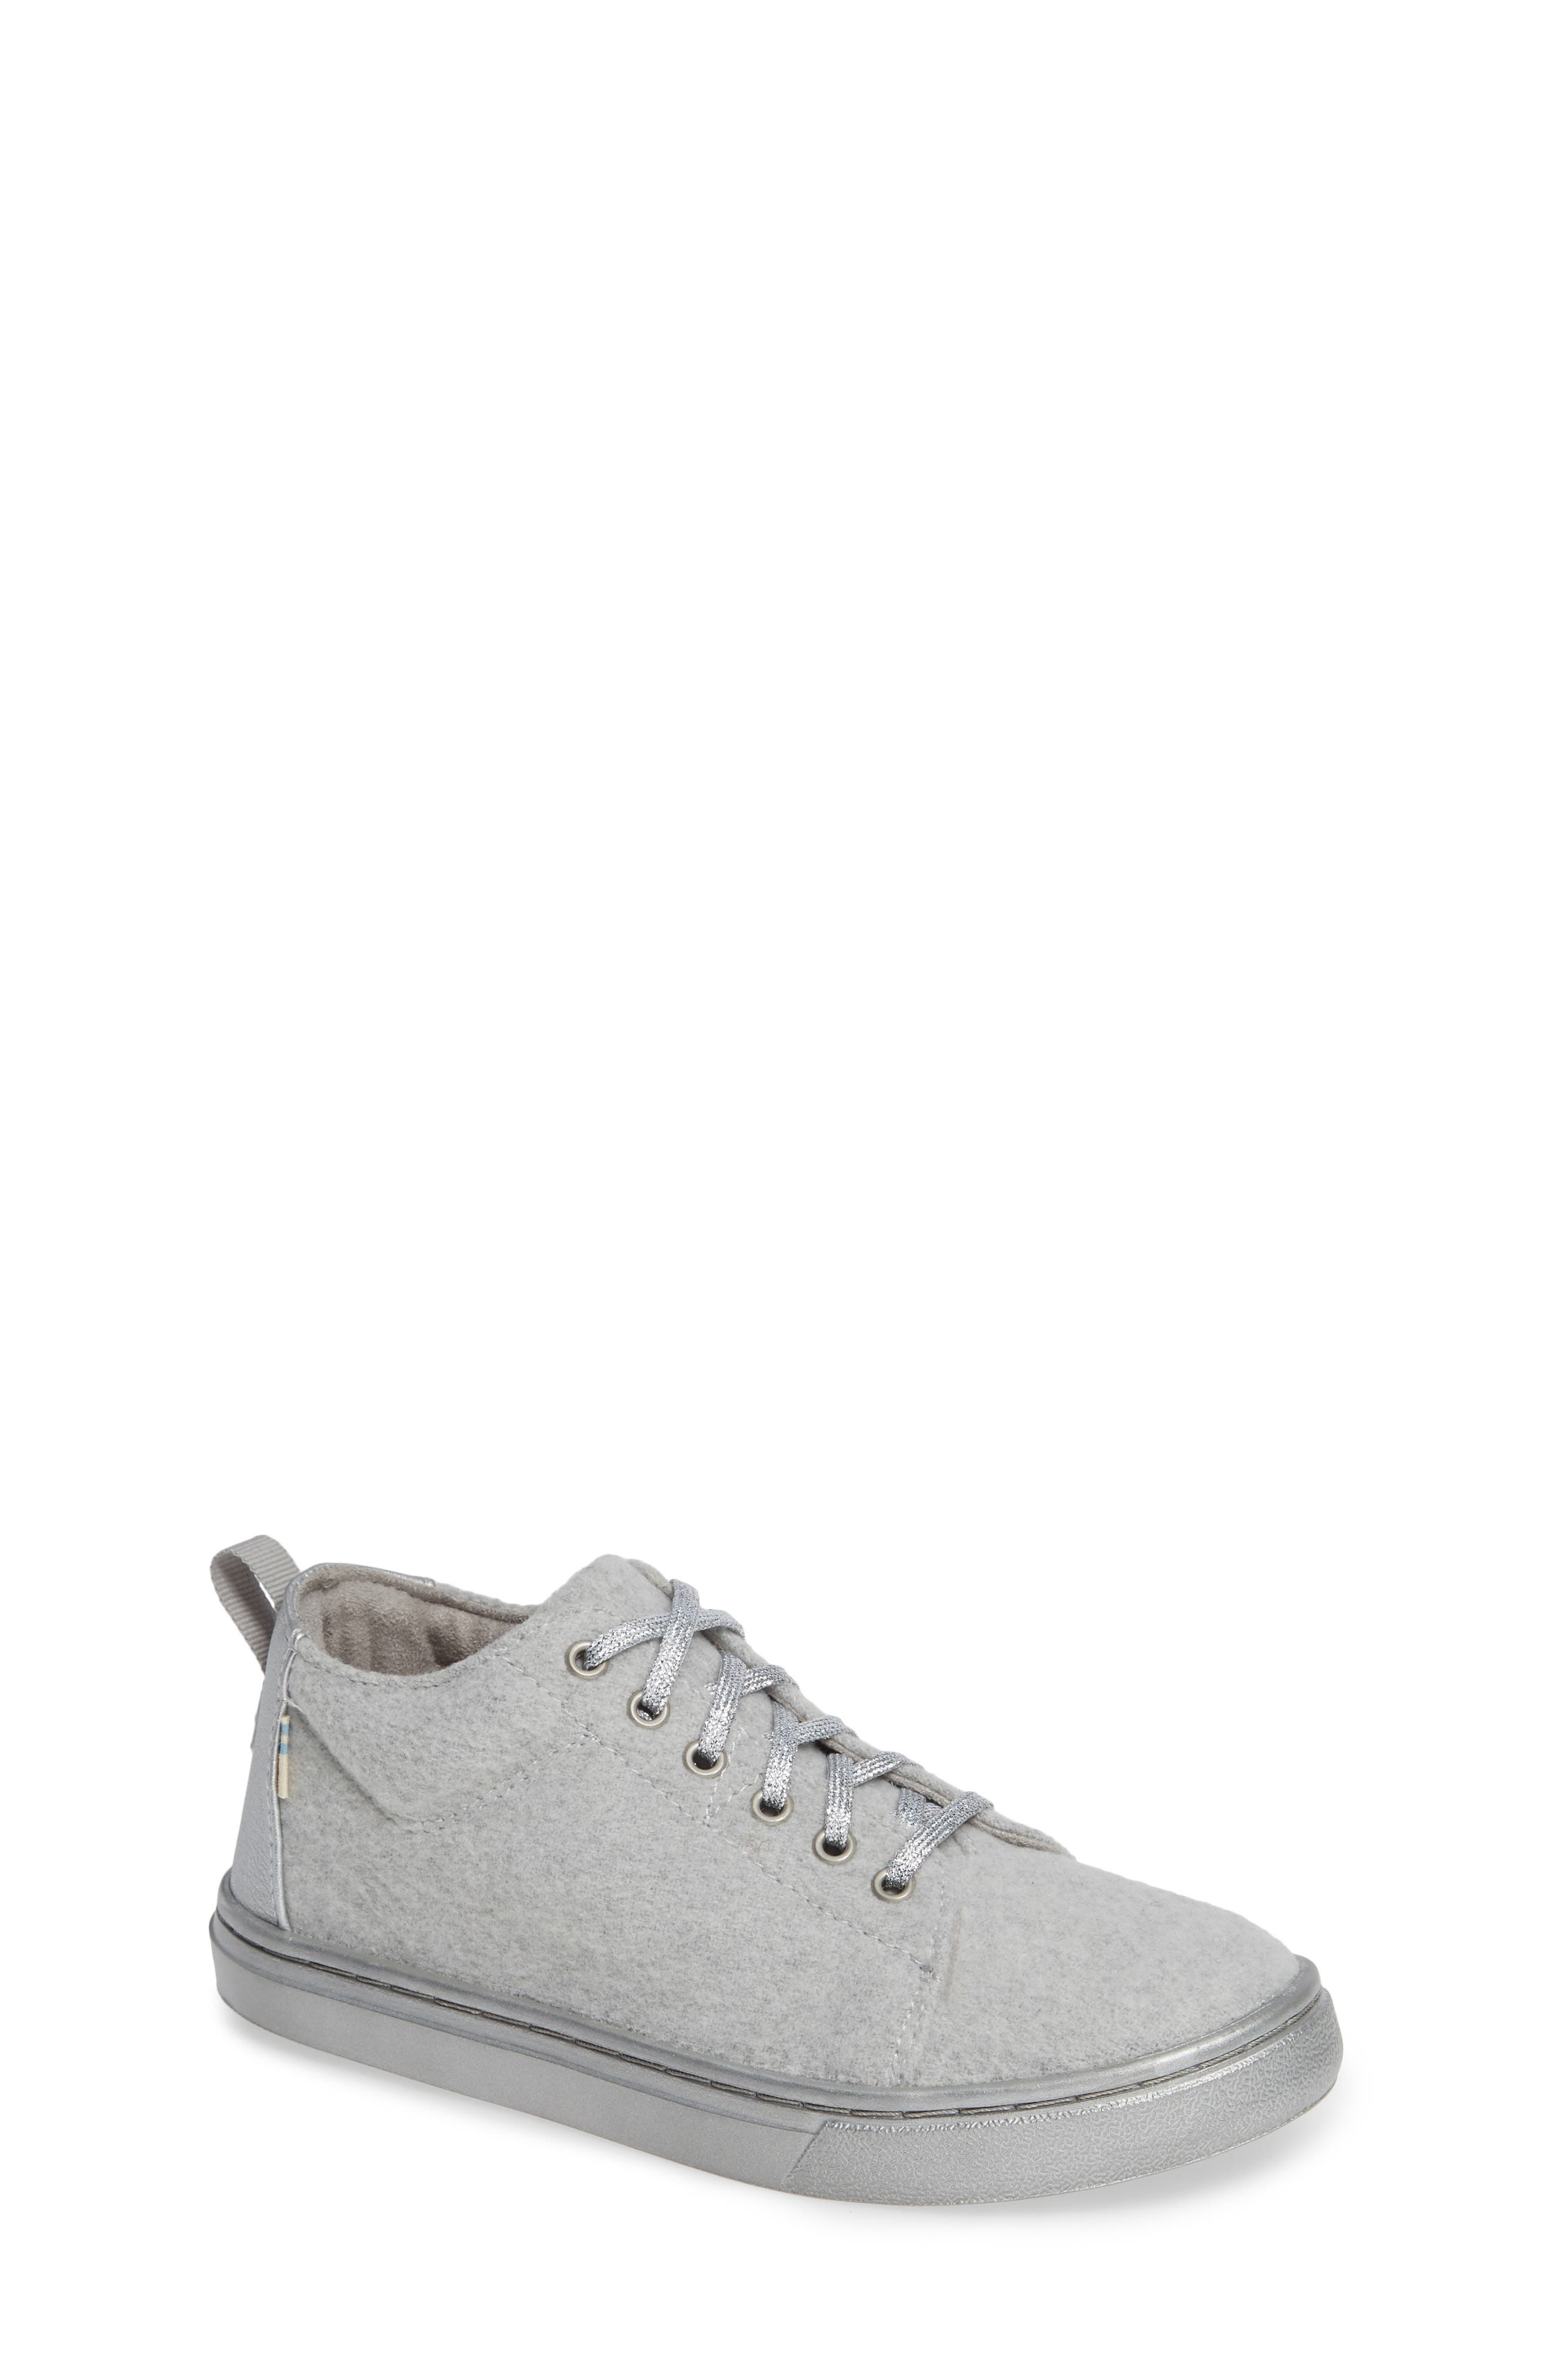 Lenny Mid Top Sneaker,                             Main thumbnail 1, color,                             DRIZZLE GREY FELT